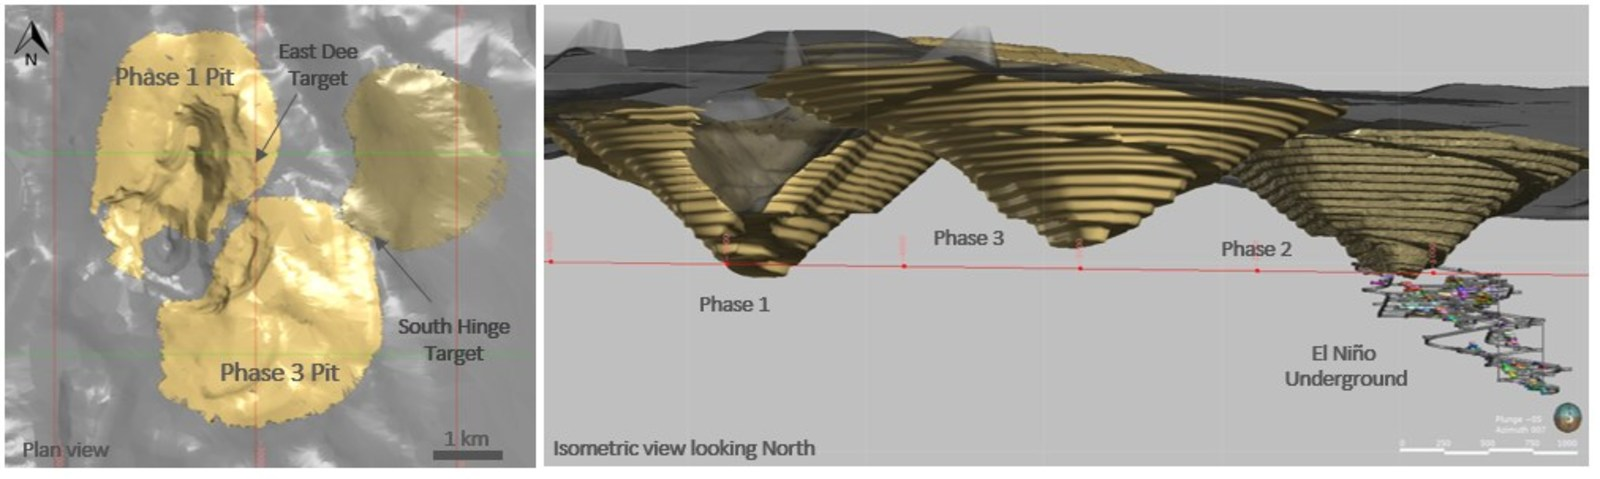 Figure 3: Plan view of the South Arturo area showing the position of the Phase 2 Pit and the proposed Phases 1 and 3 Isometric view showing the underground El Niño proposed development.